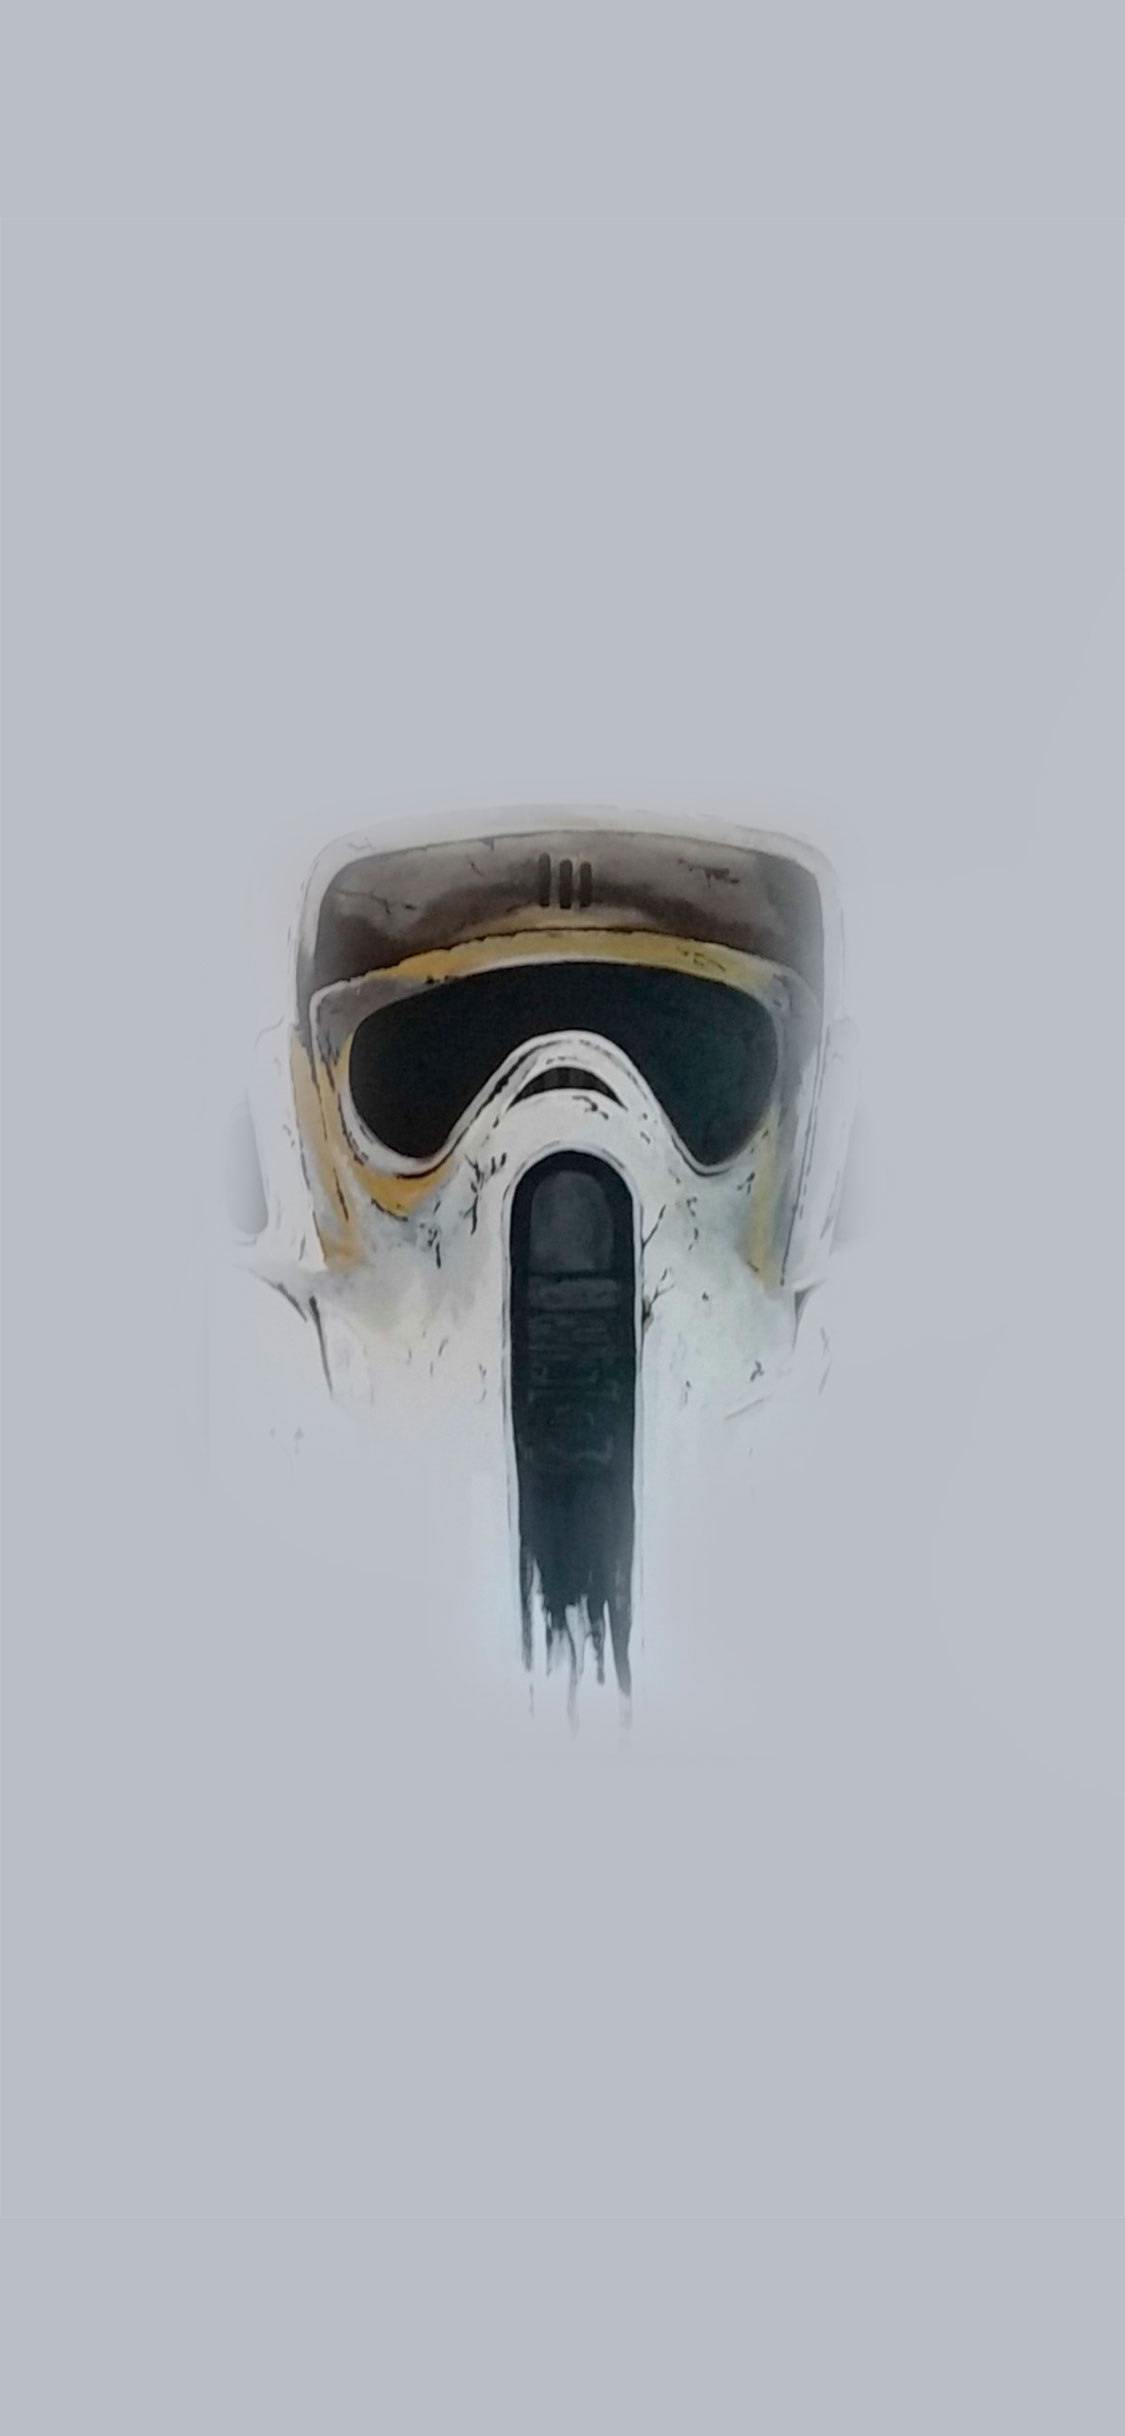 iPhone wallpaper star wars3 Fonds d'écran iPhone du 17/05/2018